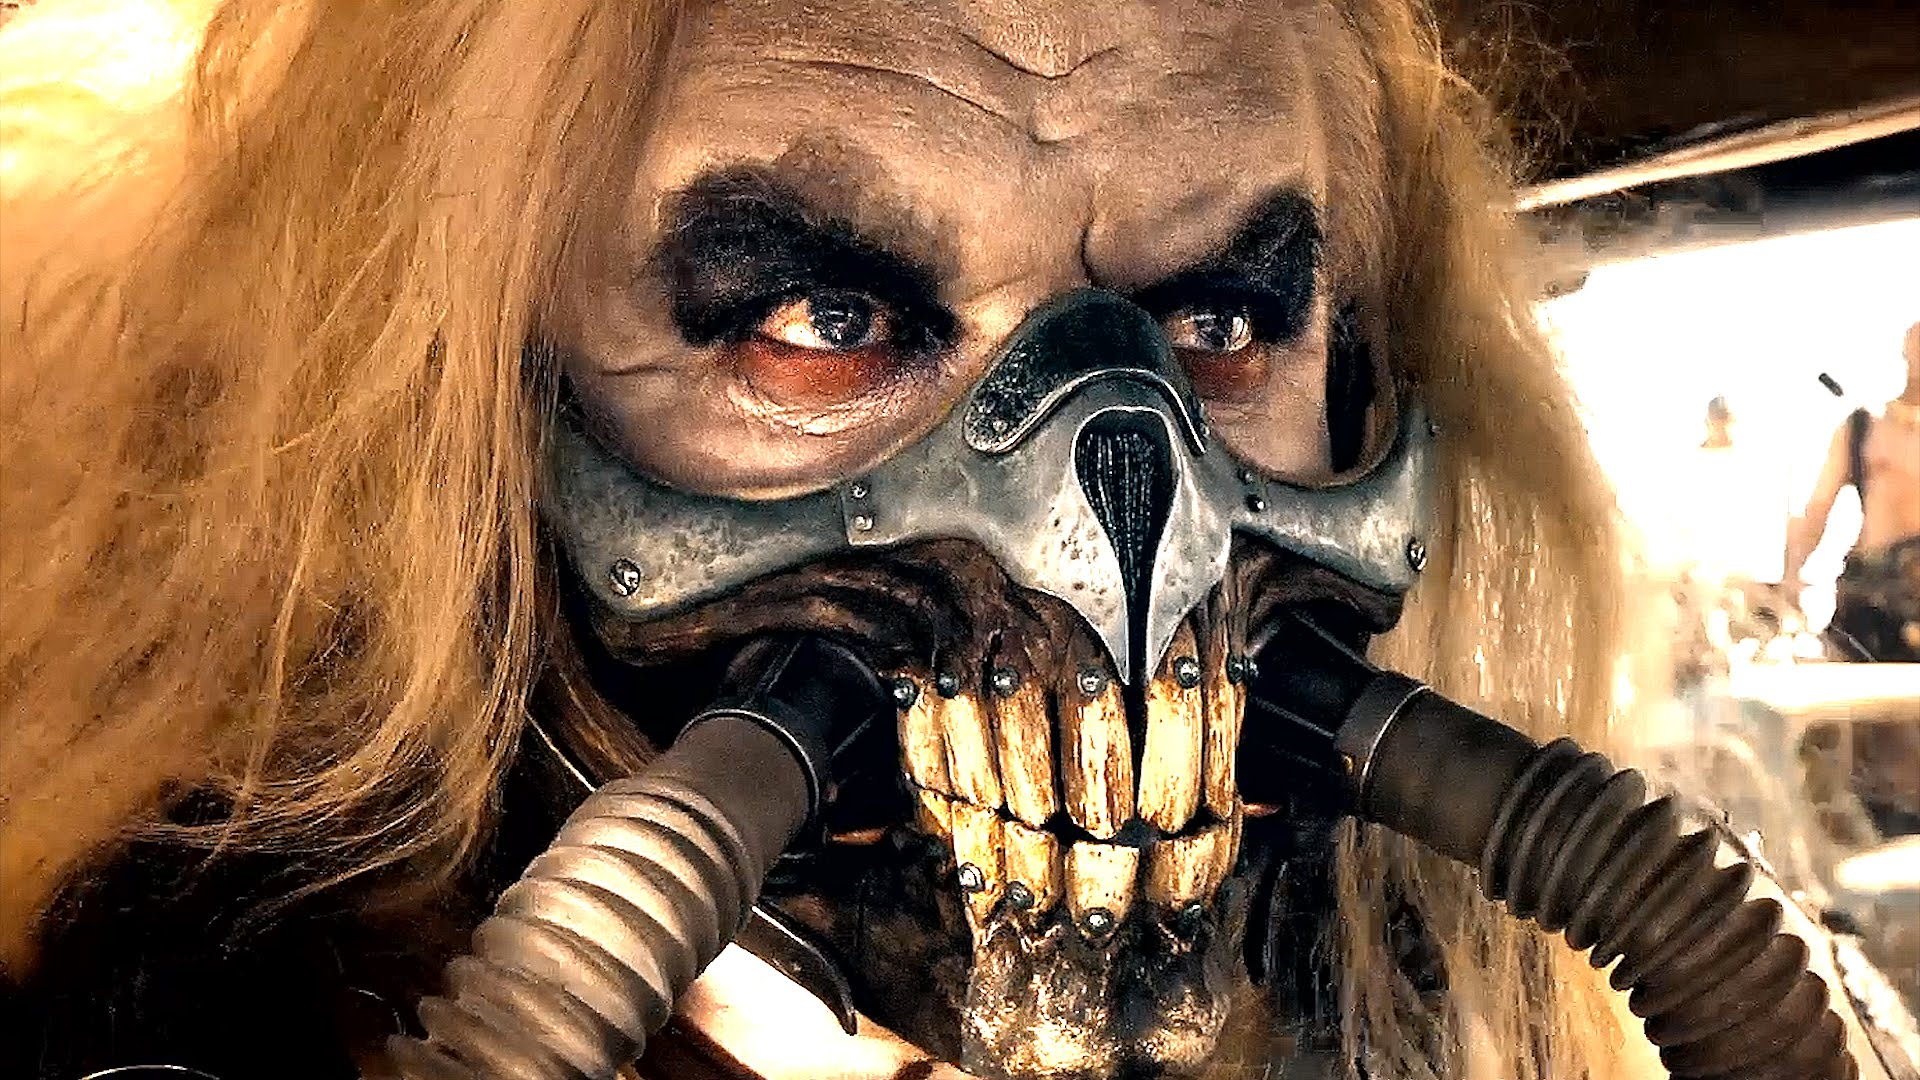 In a recent Q&A, Miller revealed that the editor, Magaret Sixel, who also happens to be his wife, had never edited an action film before Fury Road.